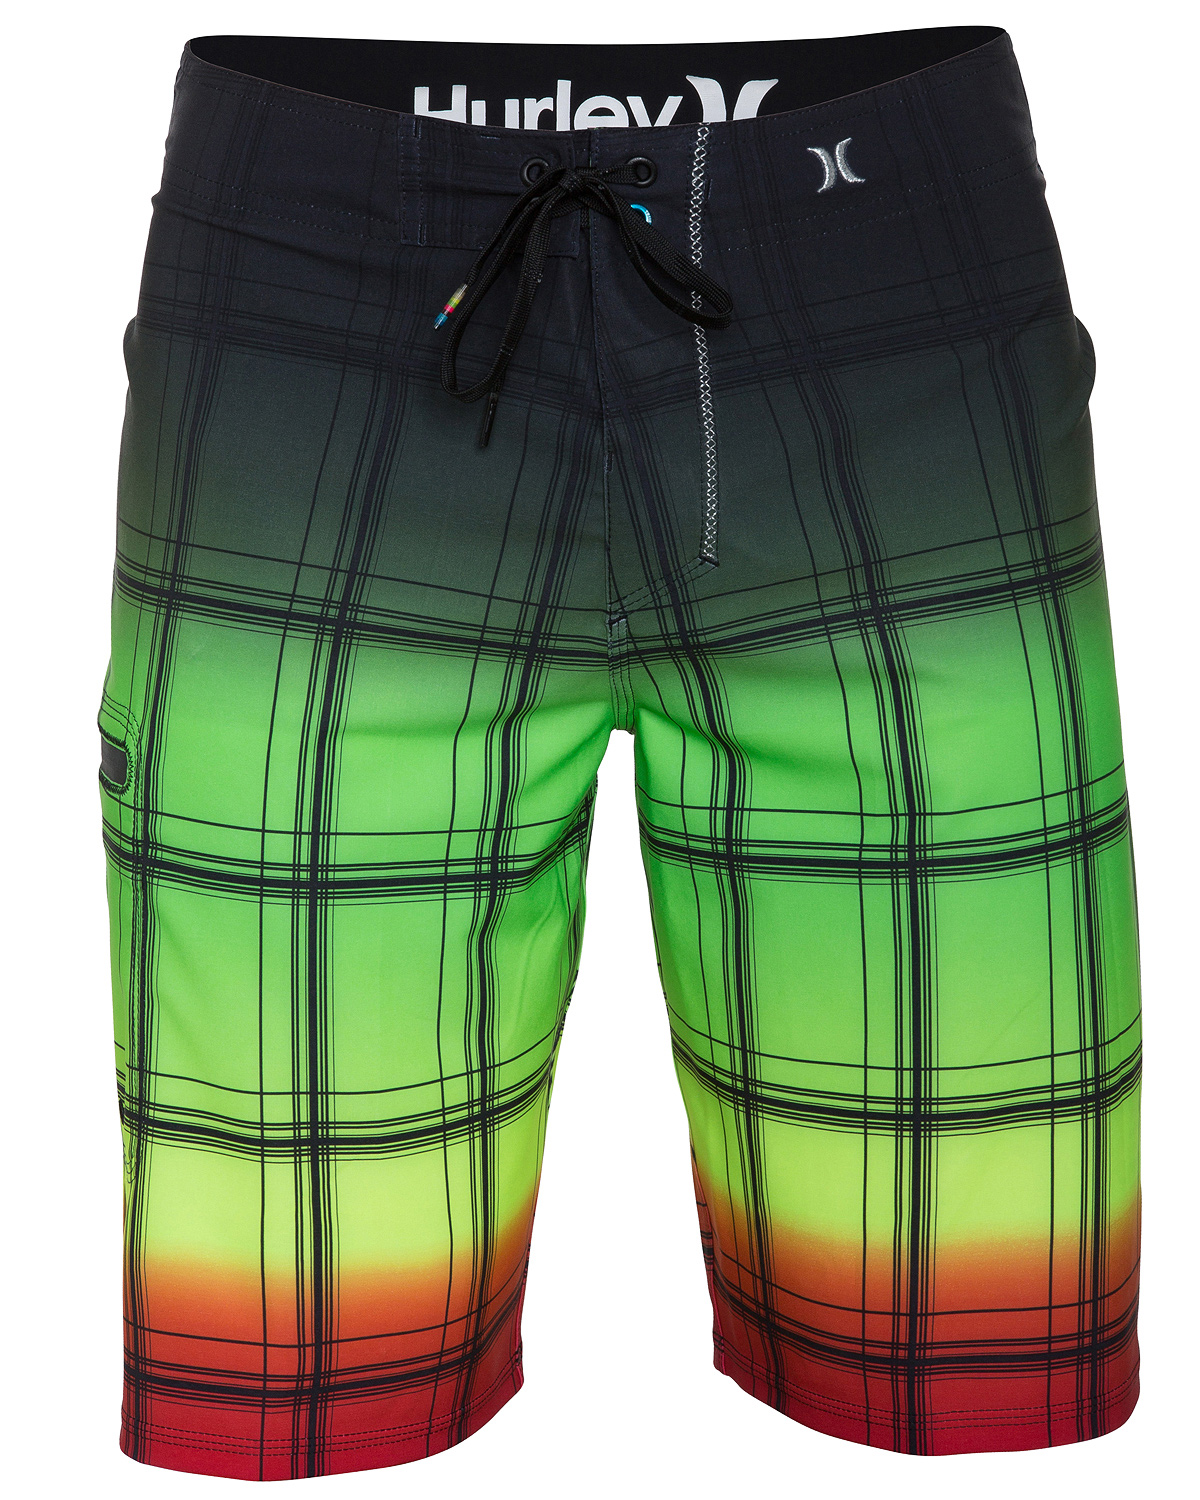 "Surf Key Features of the Hurley Phantom 60 Puerto Rico Sands Boardshorts: 21"" true performance fit Recycled phantom 60% stretch Patented ez fly closure Signature foil branding Metallic embroidery Performance water repellency No outseam Streamlined zipper pocket and engineered print - $65.00"